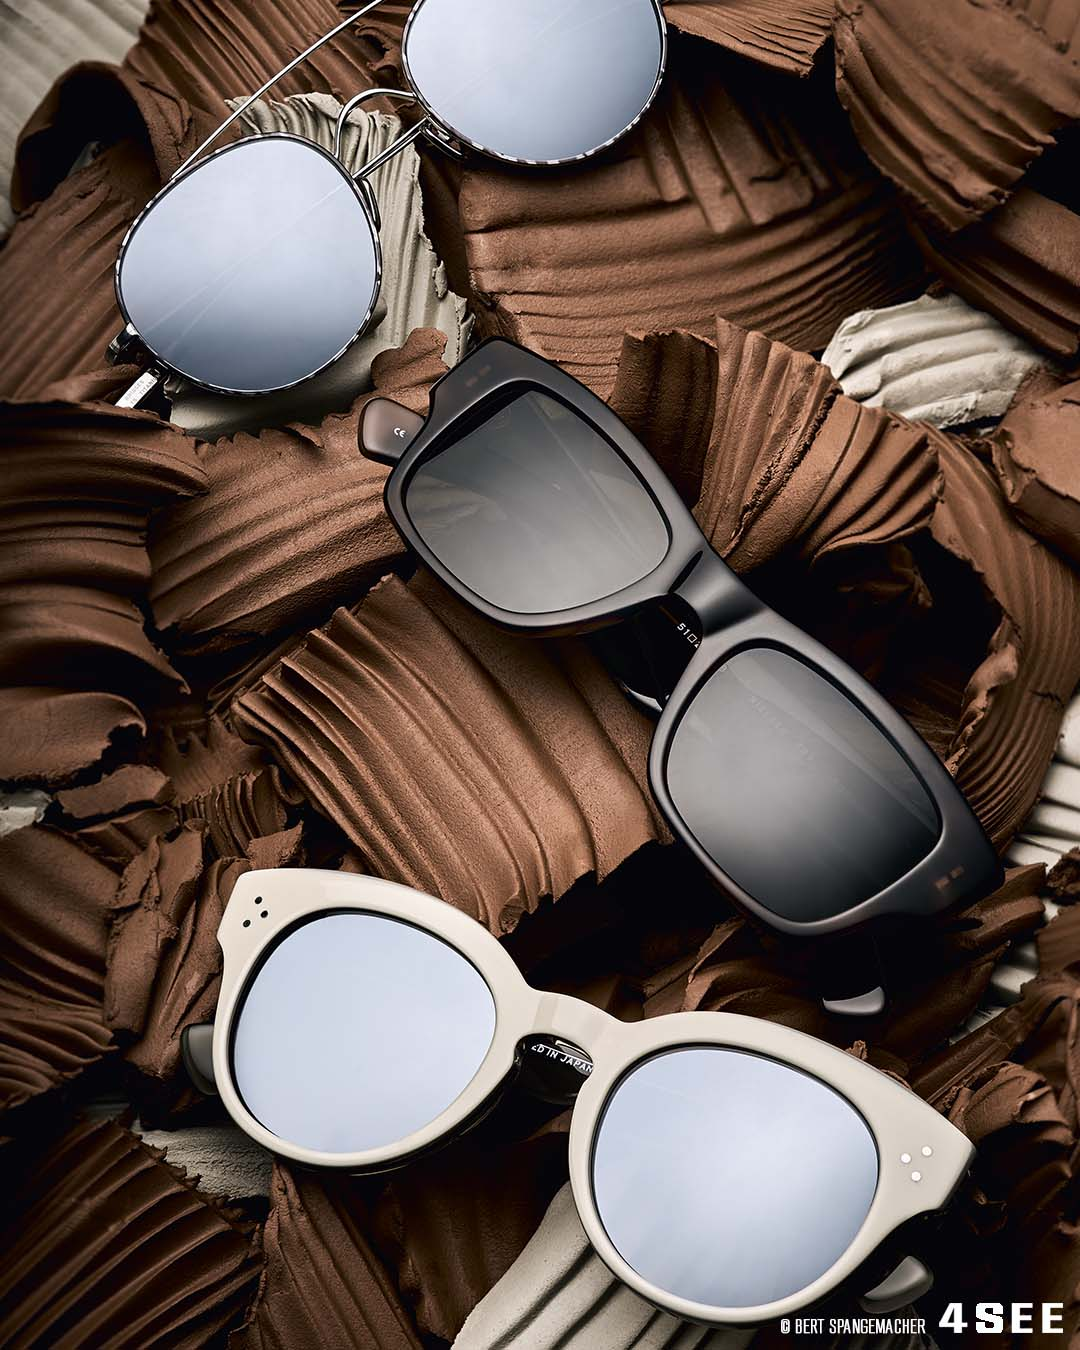 4SEE Label Profiler - SALT. Sunglasses photographed by Bert Spangemacher